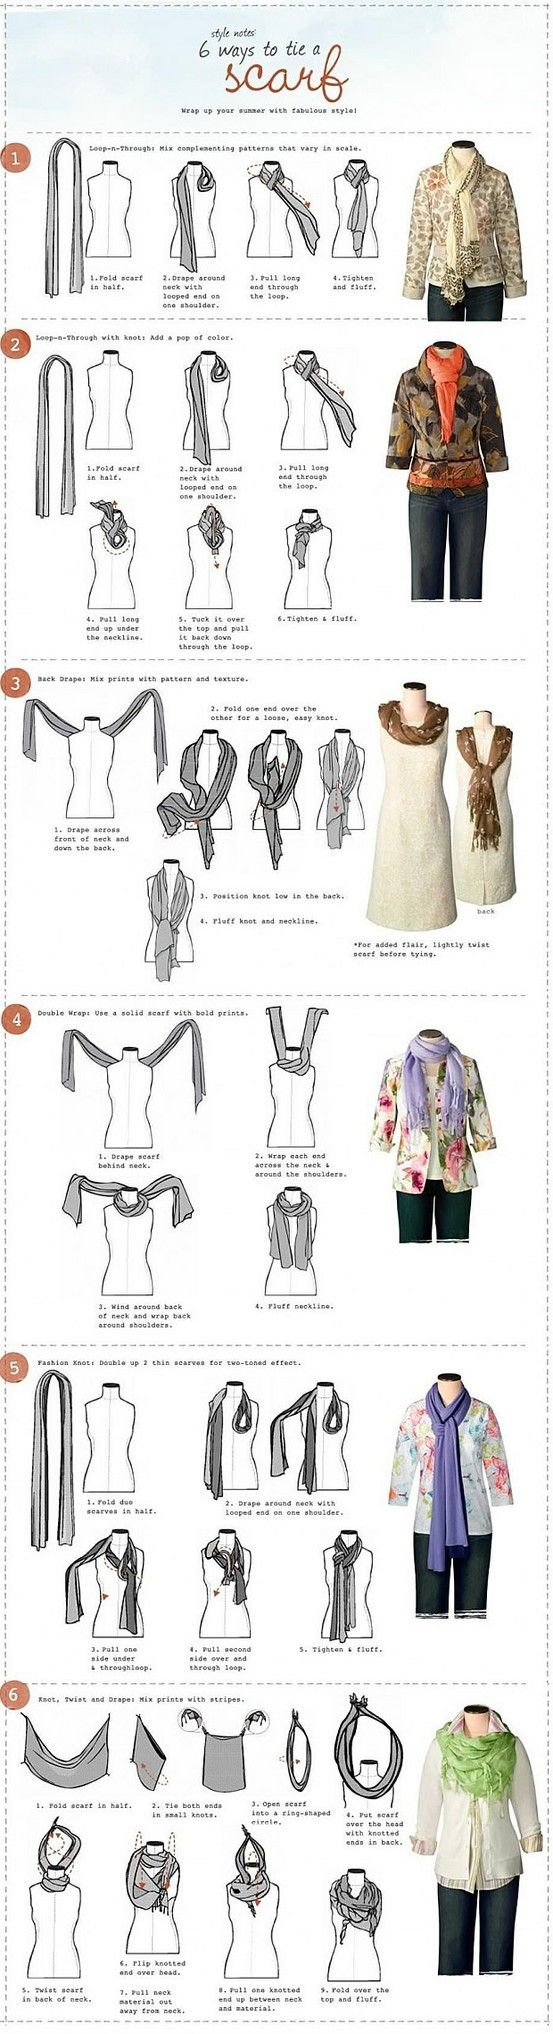 Six ways to tie a scarf. :) @ Styling in Style